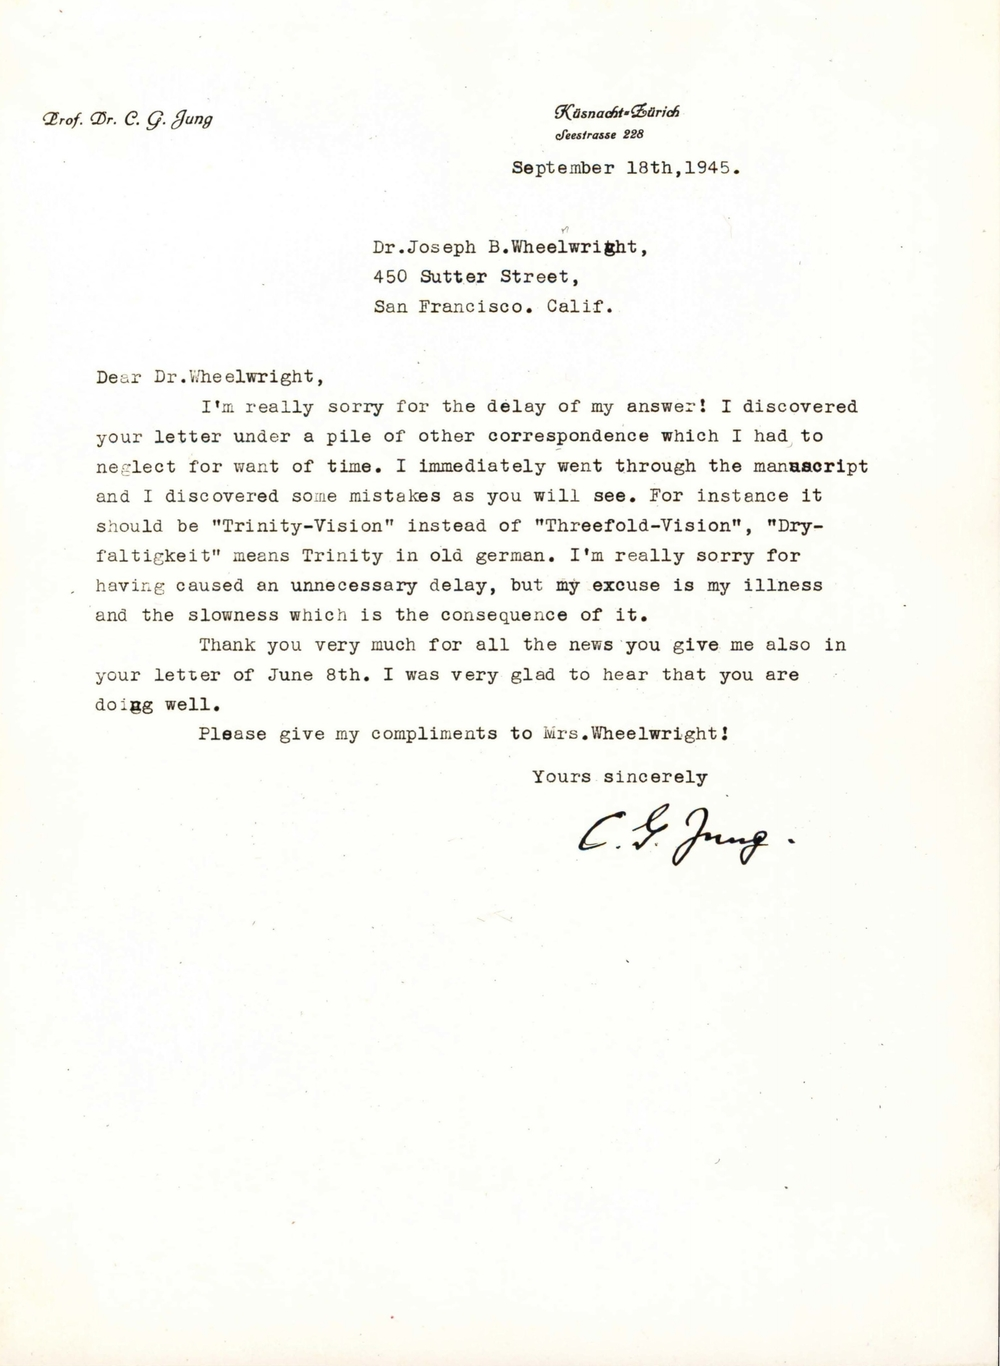 Letter from C.G. Jung to Joseph Wheelwright (September 1945)